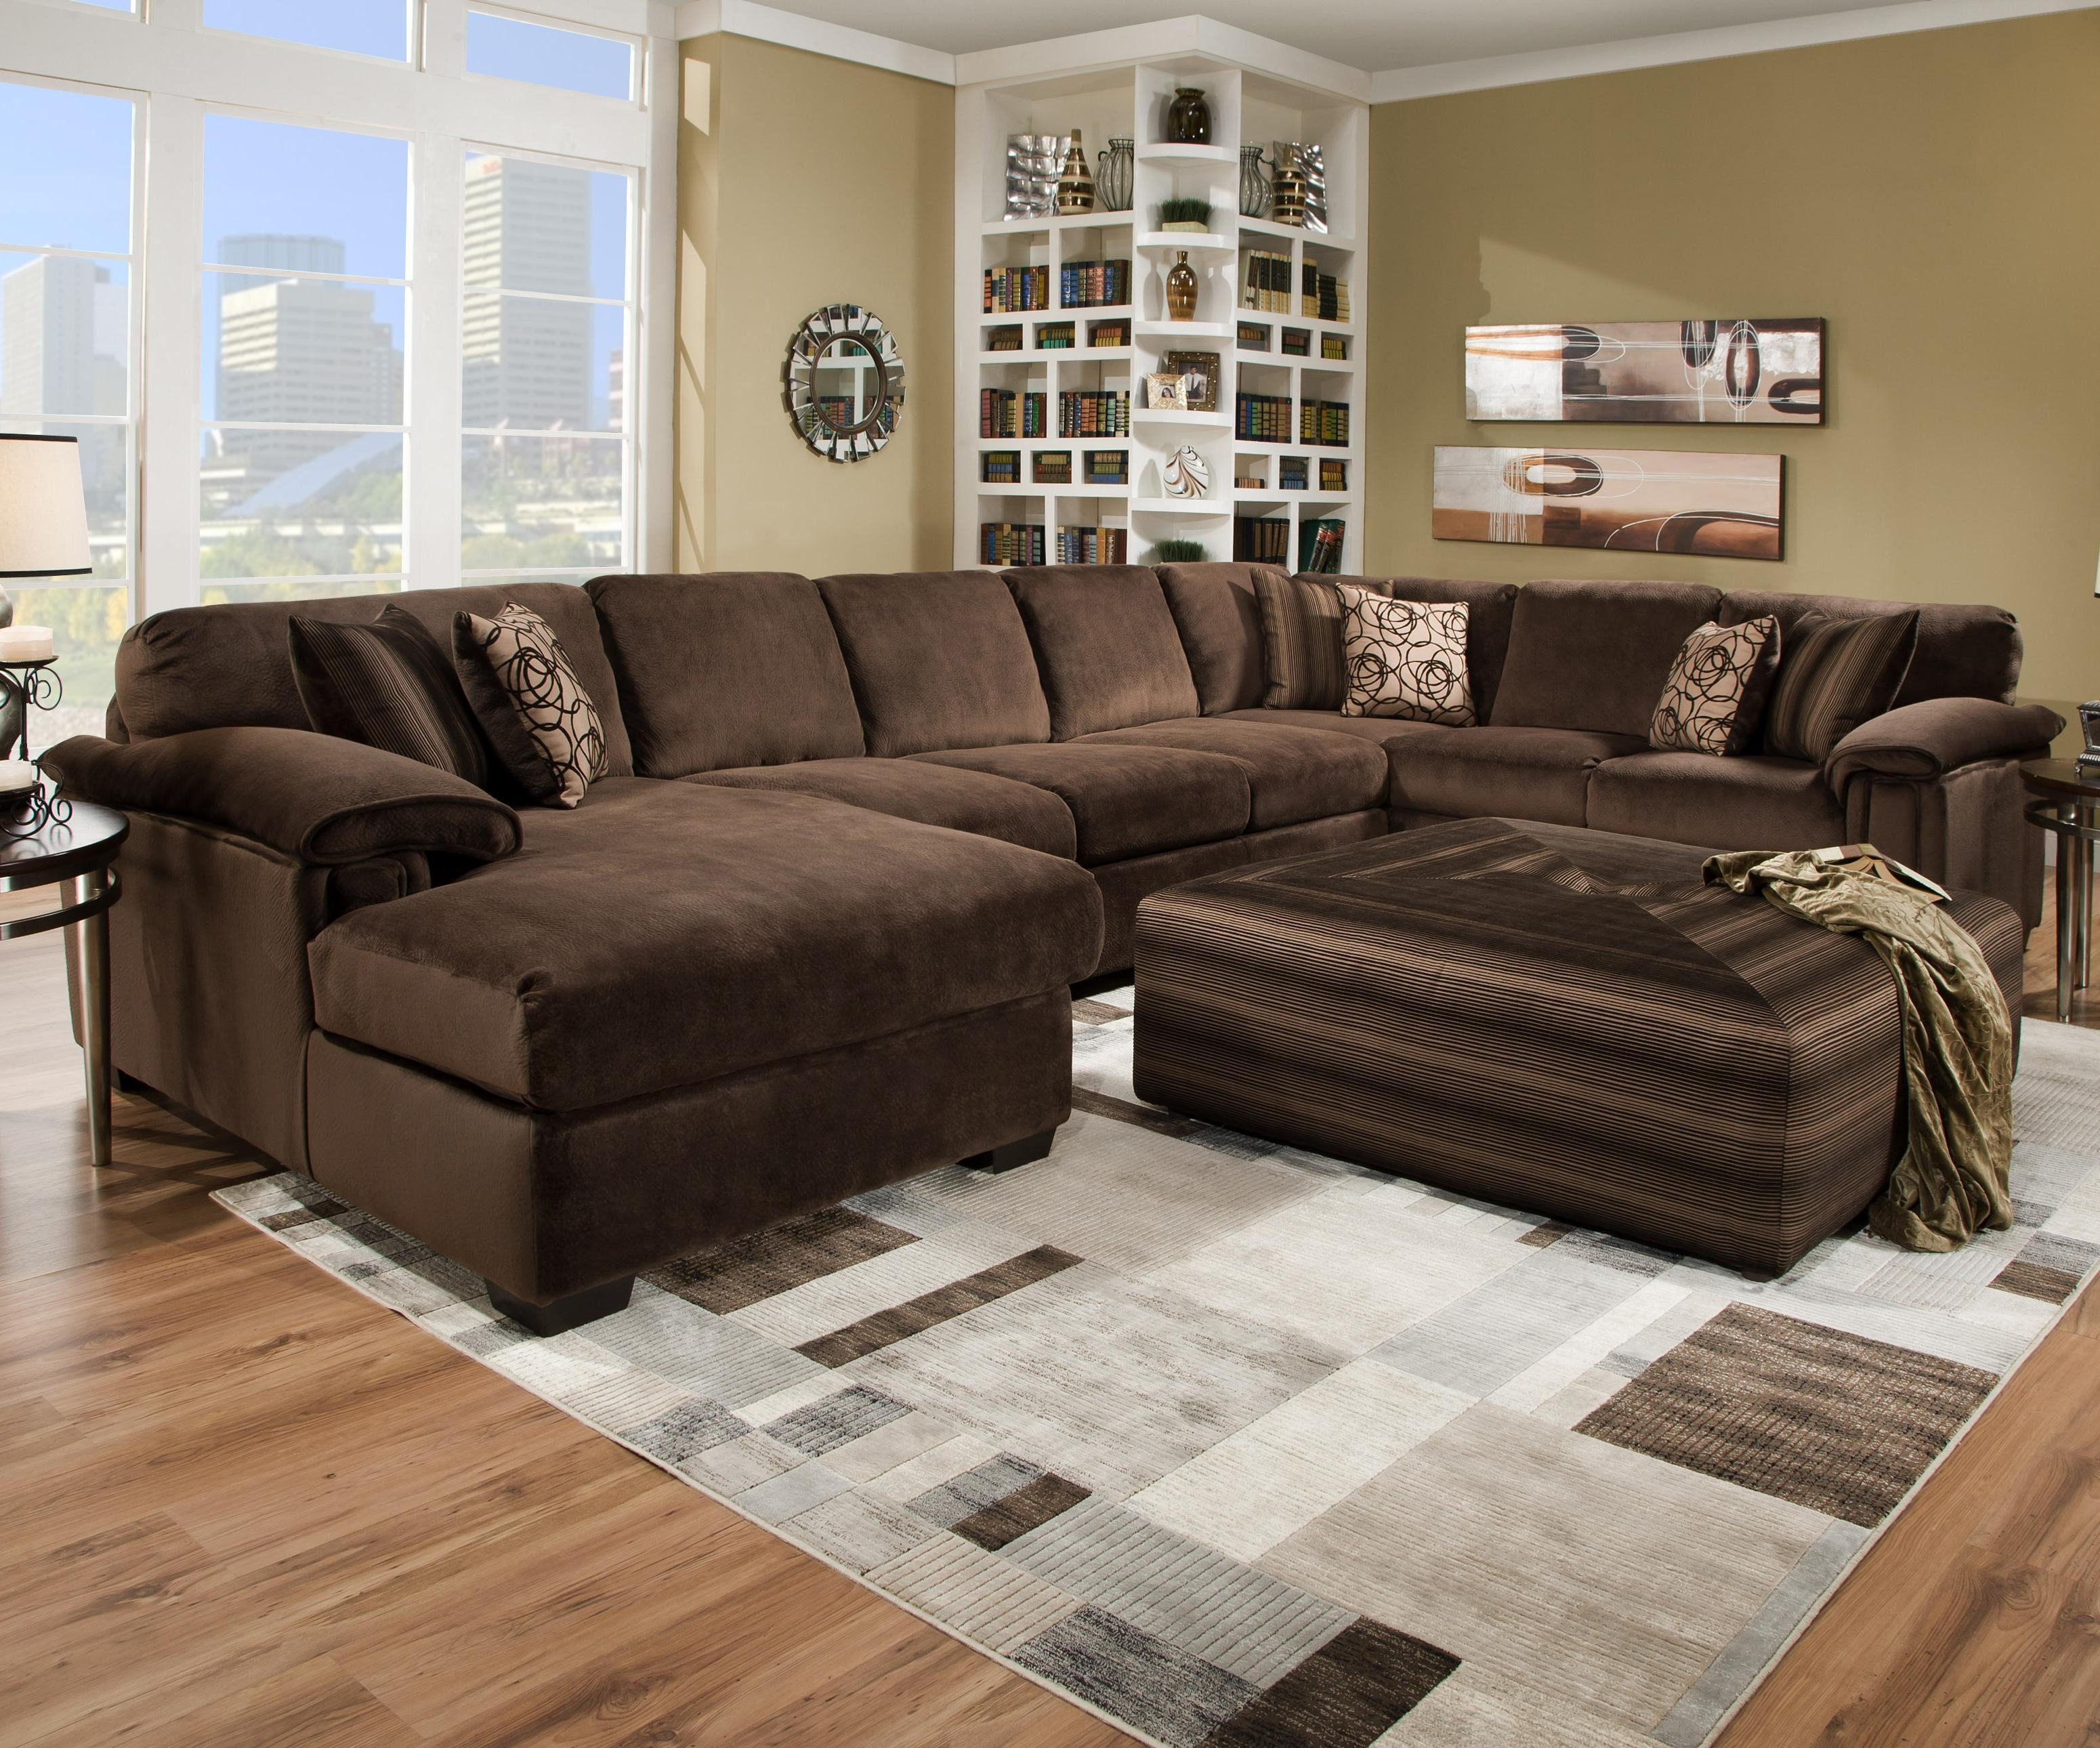 Comfortable Living Room Furniture Furniture Fy Design Oversized Couch for Charming